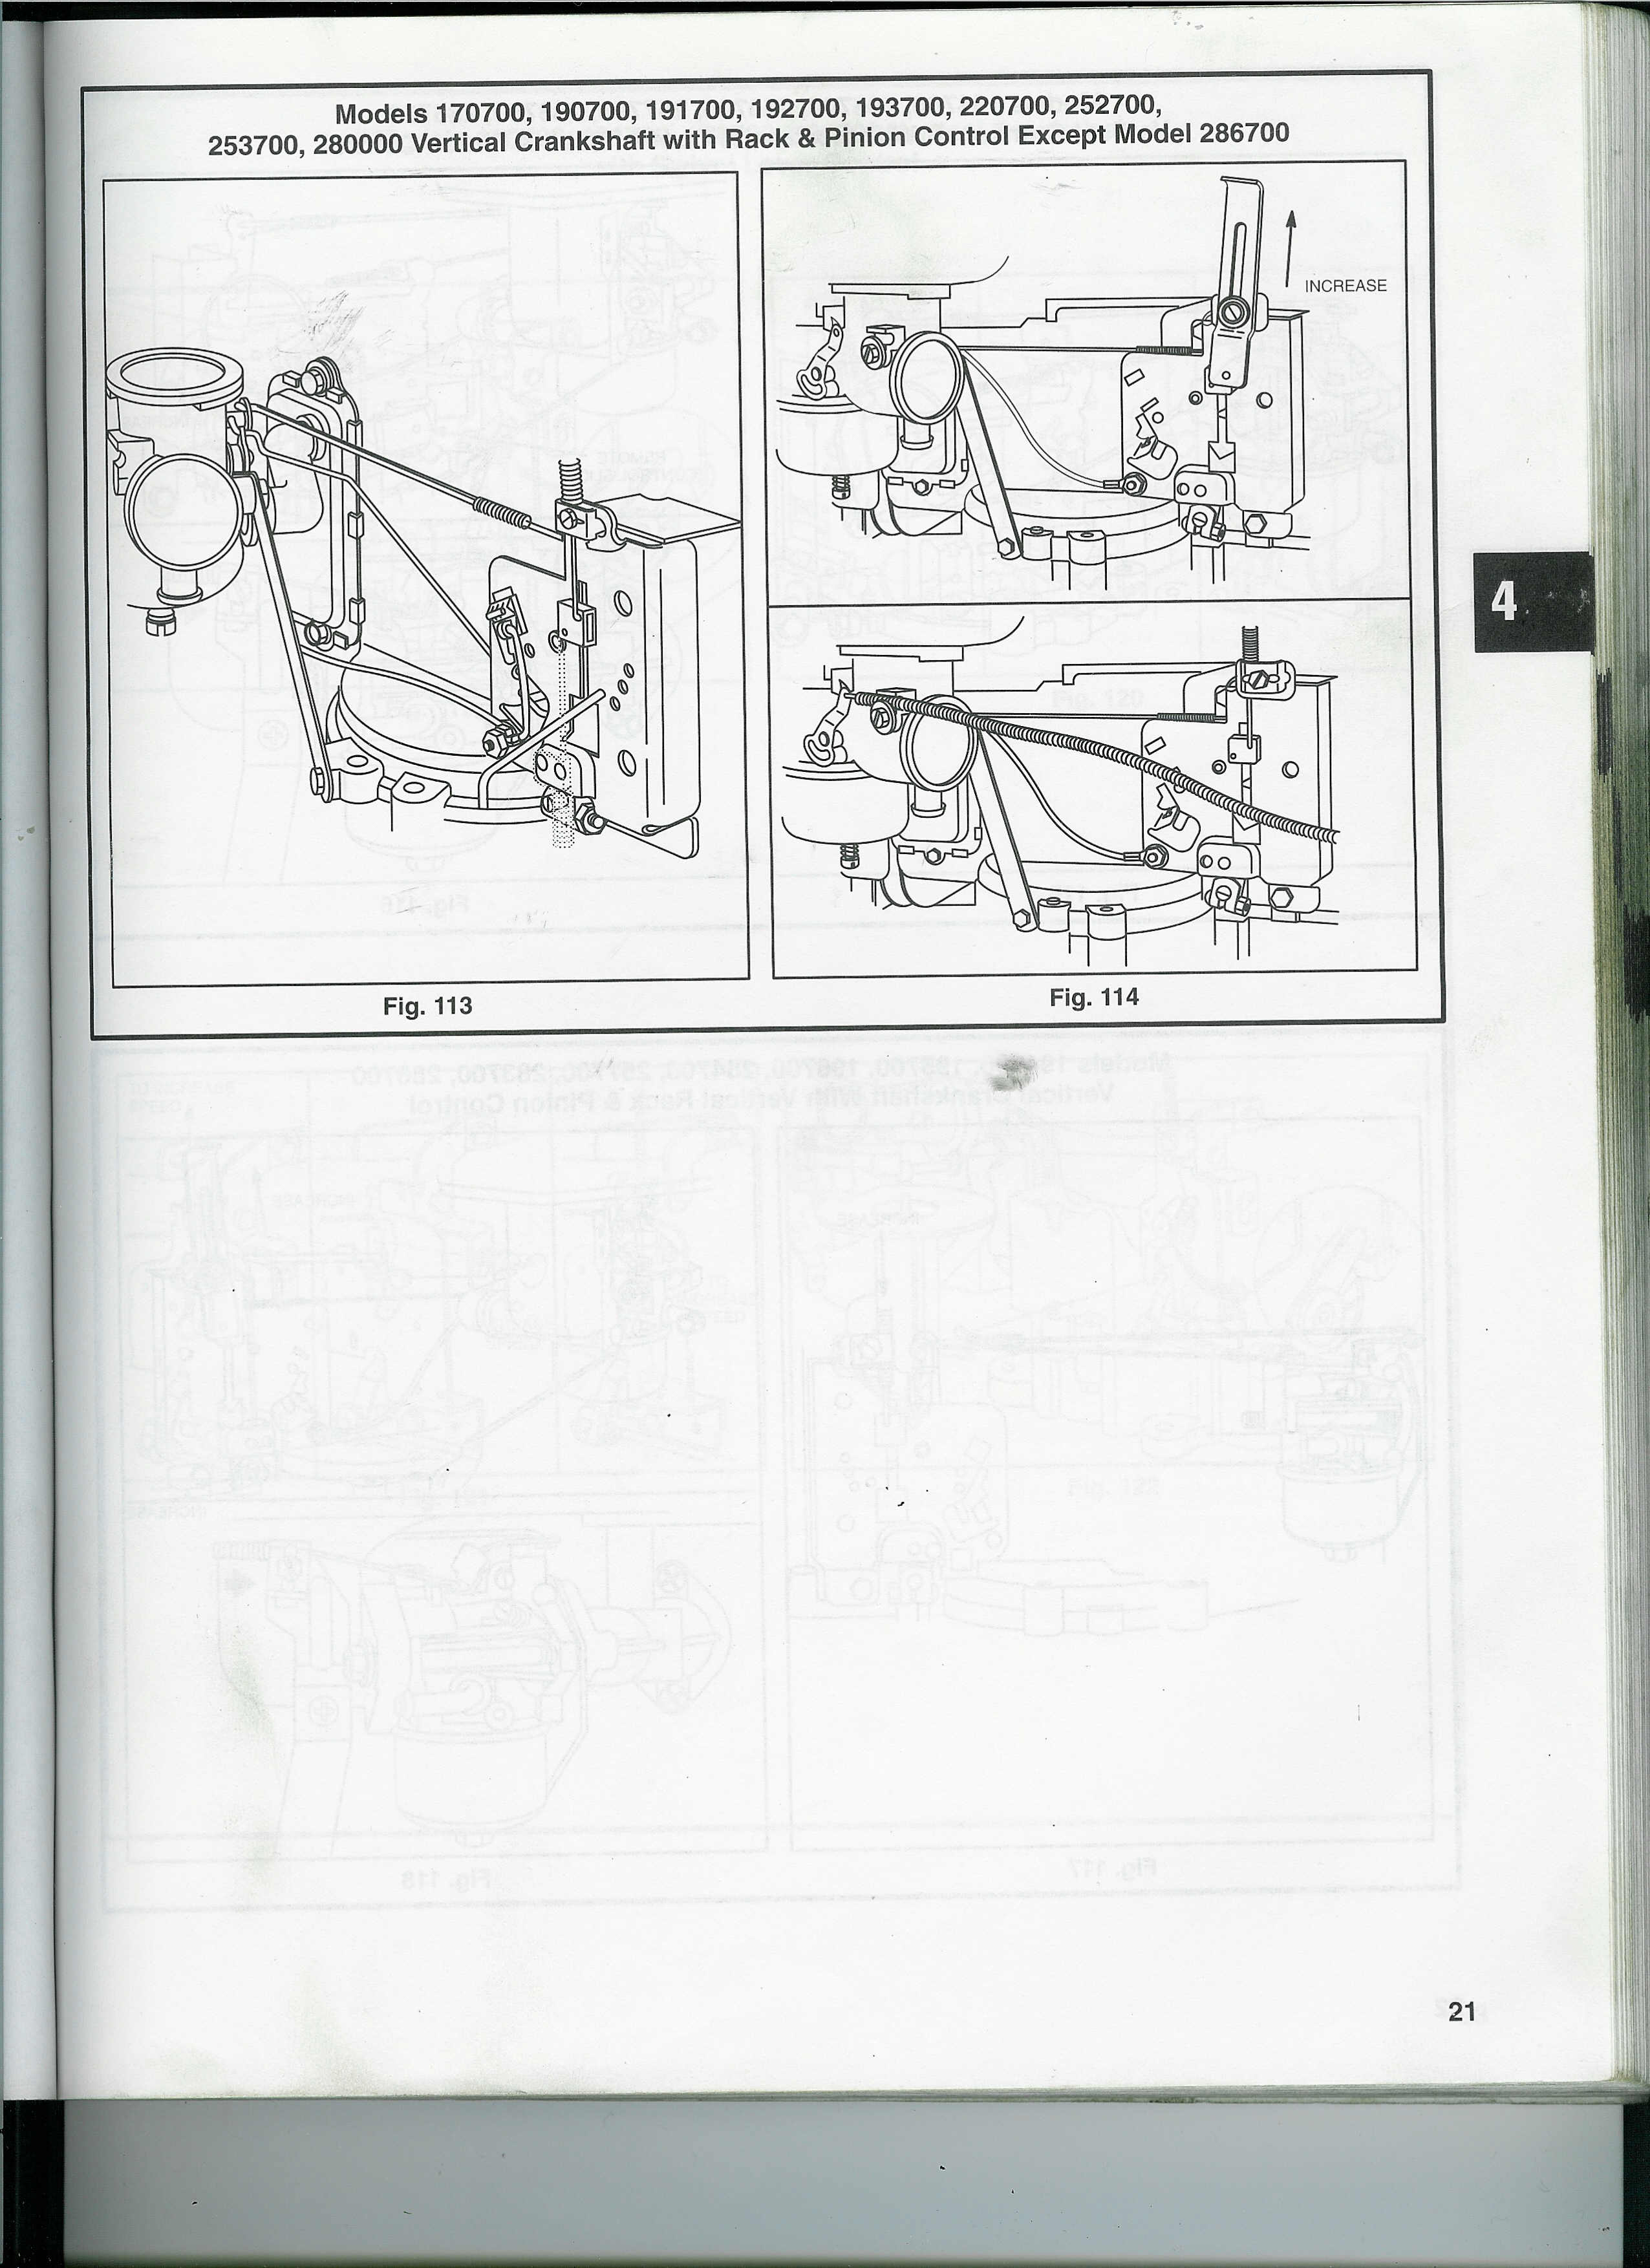 I Have A Murray Tractor With 281707 Model 12 Hp Briggs And Select Wiring Diagram Graphic